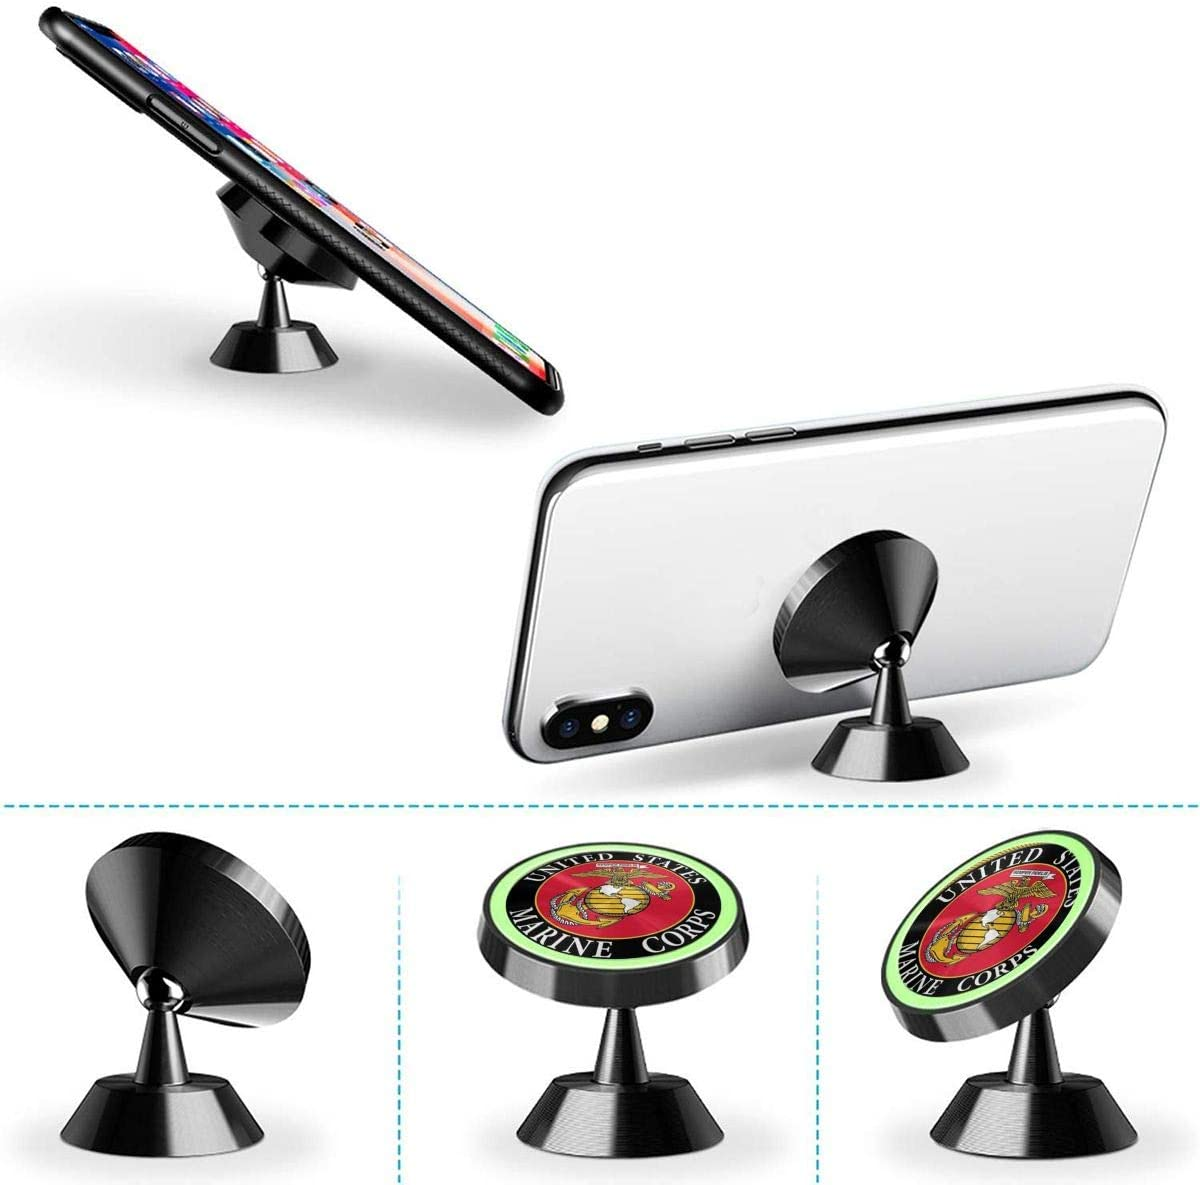 Magnetic Phone Car Mount The Nightmare Before Christmas Universal Rotation 360/° Car Phone Mount Dashboard Metal Magnetic Holder Compatible with GPS iPhone Samsung Most Smartphones